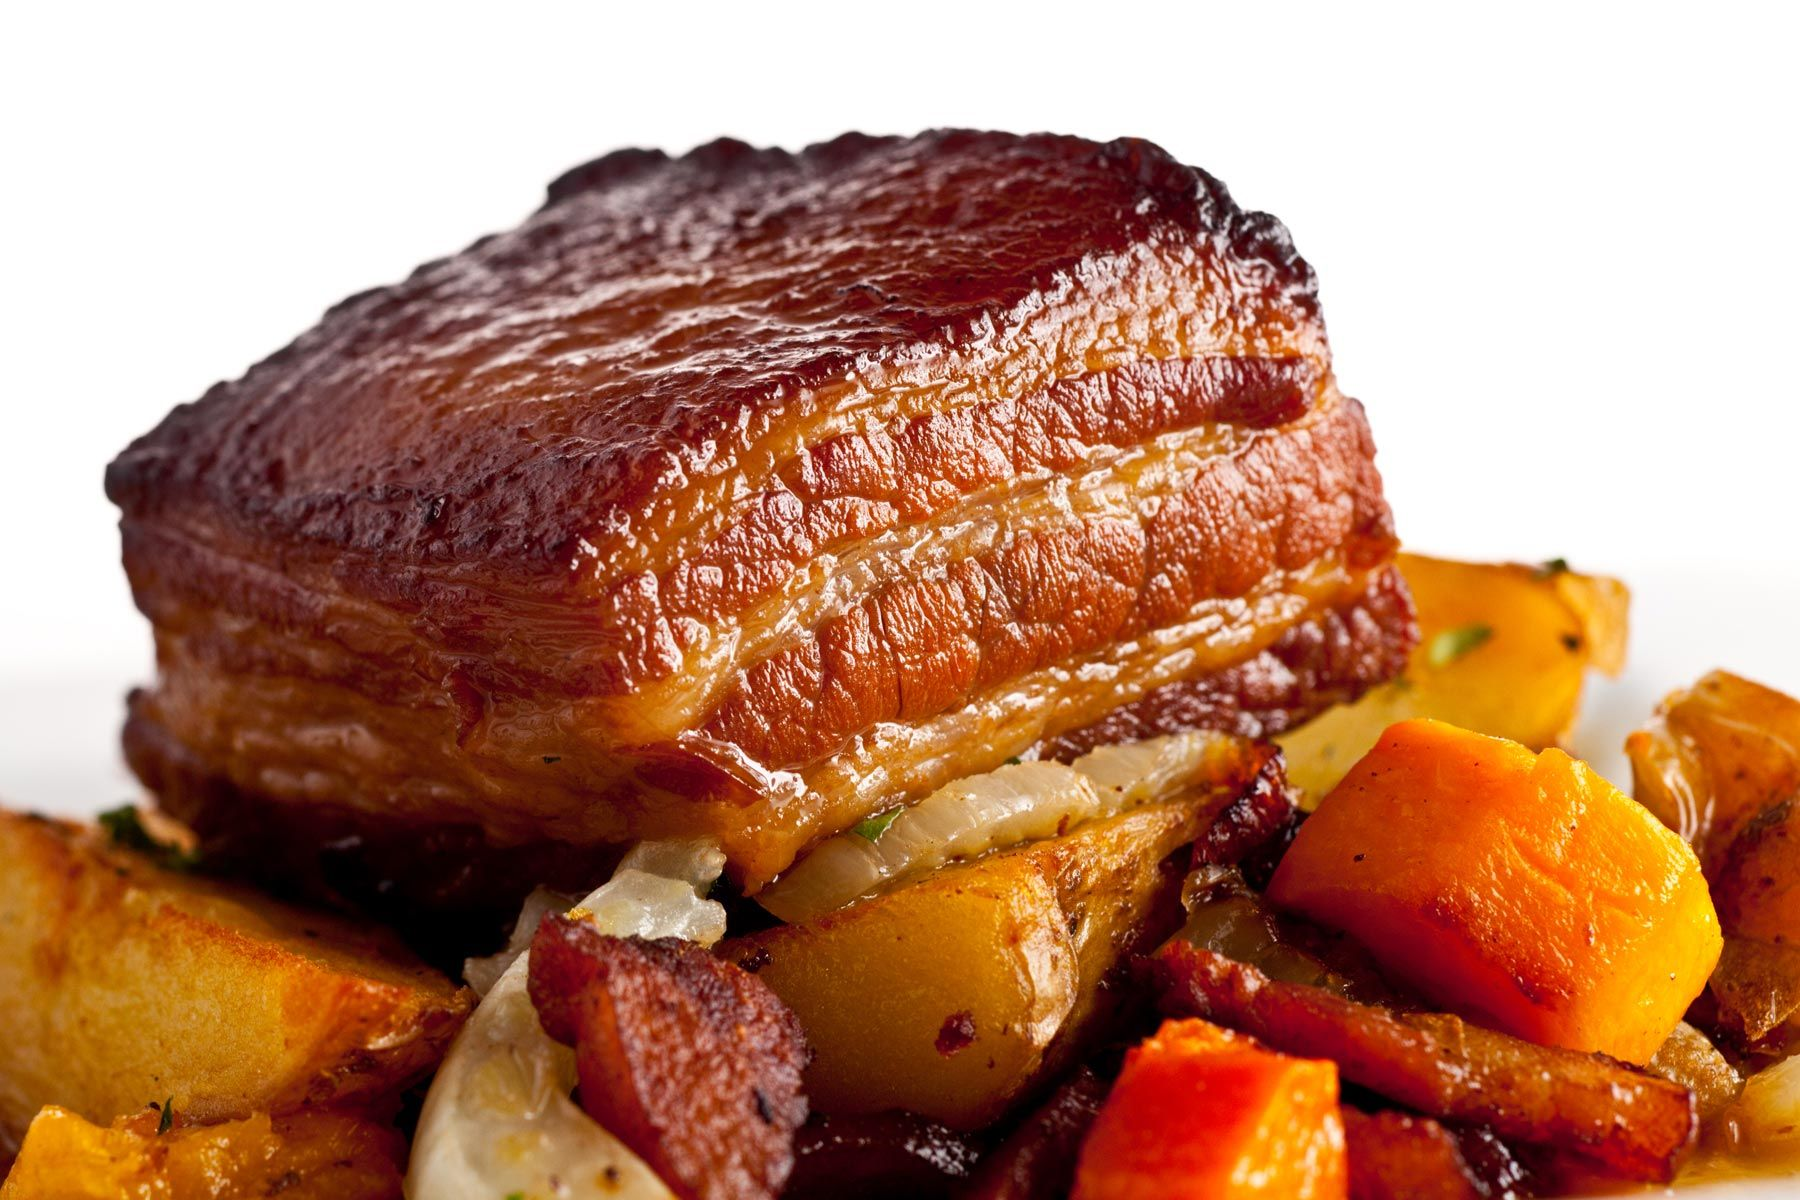 Porkbelly-on-root-vegetables-Spring-Lake-Country-Club.jpg